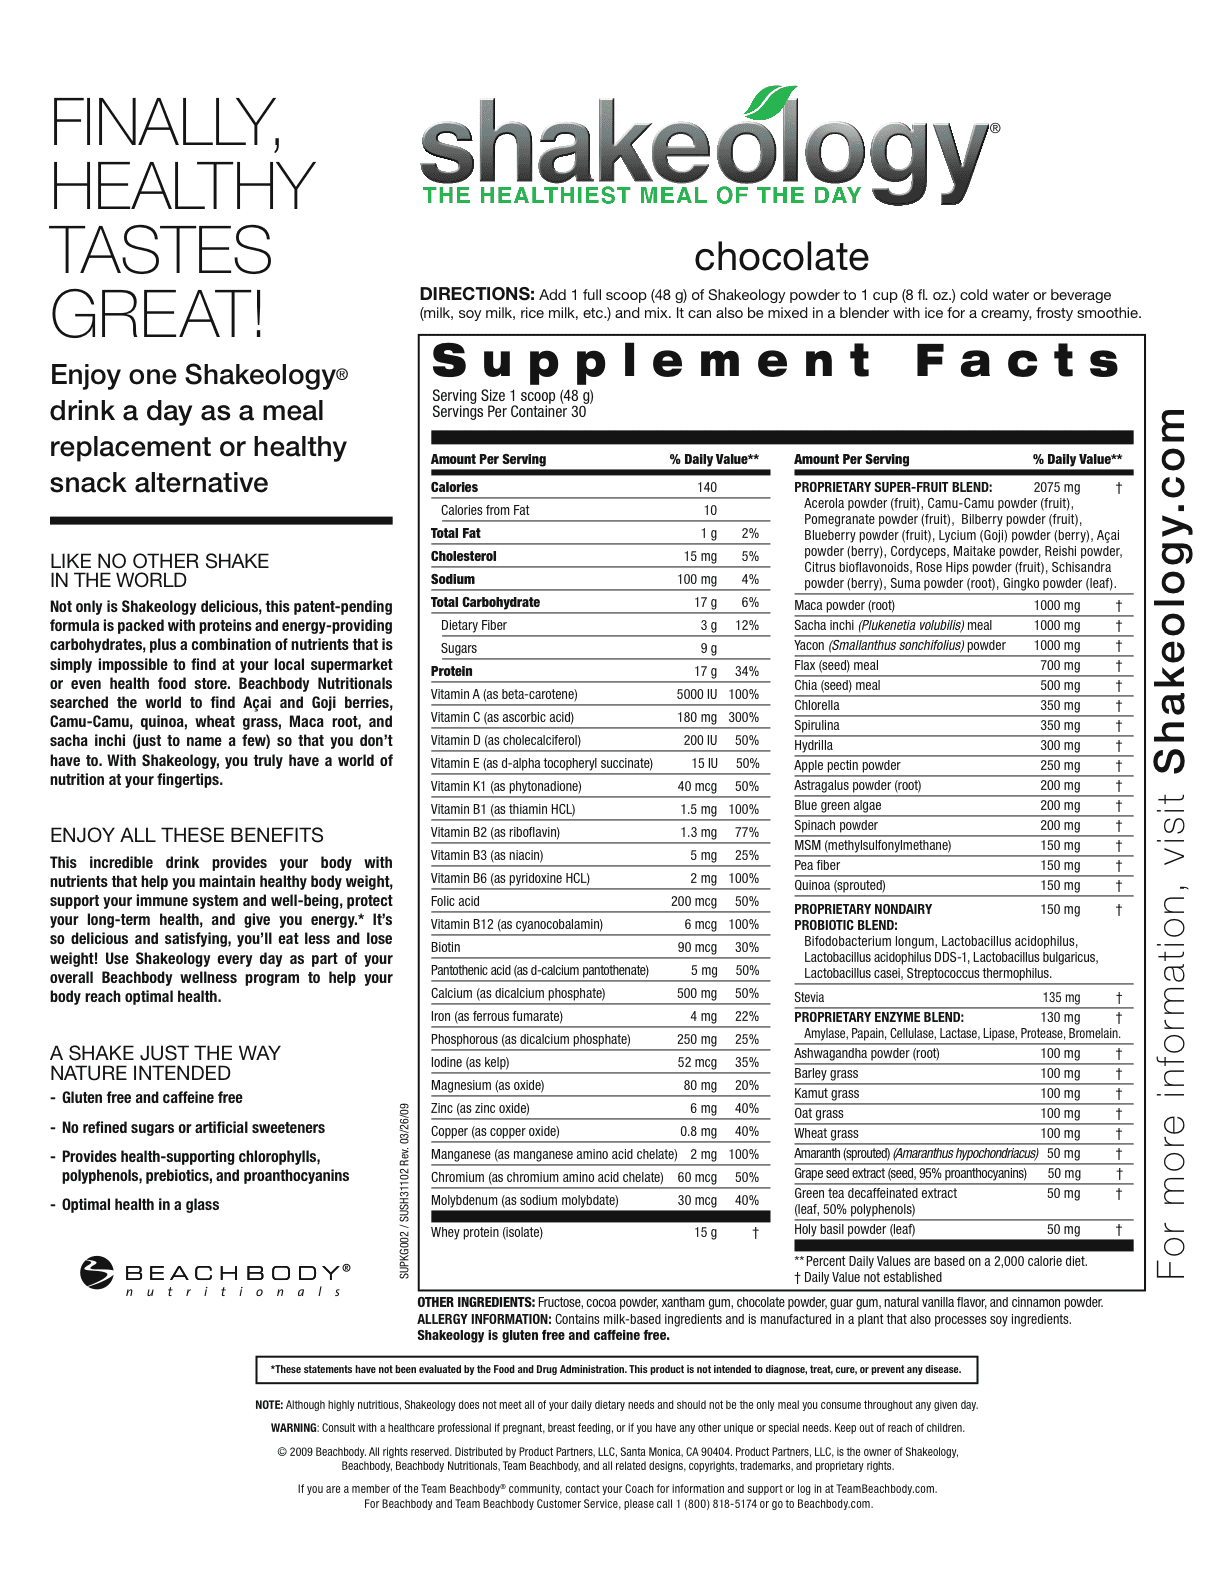 All Shakeology Ingredients